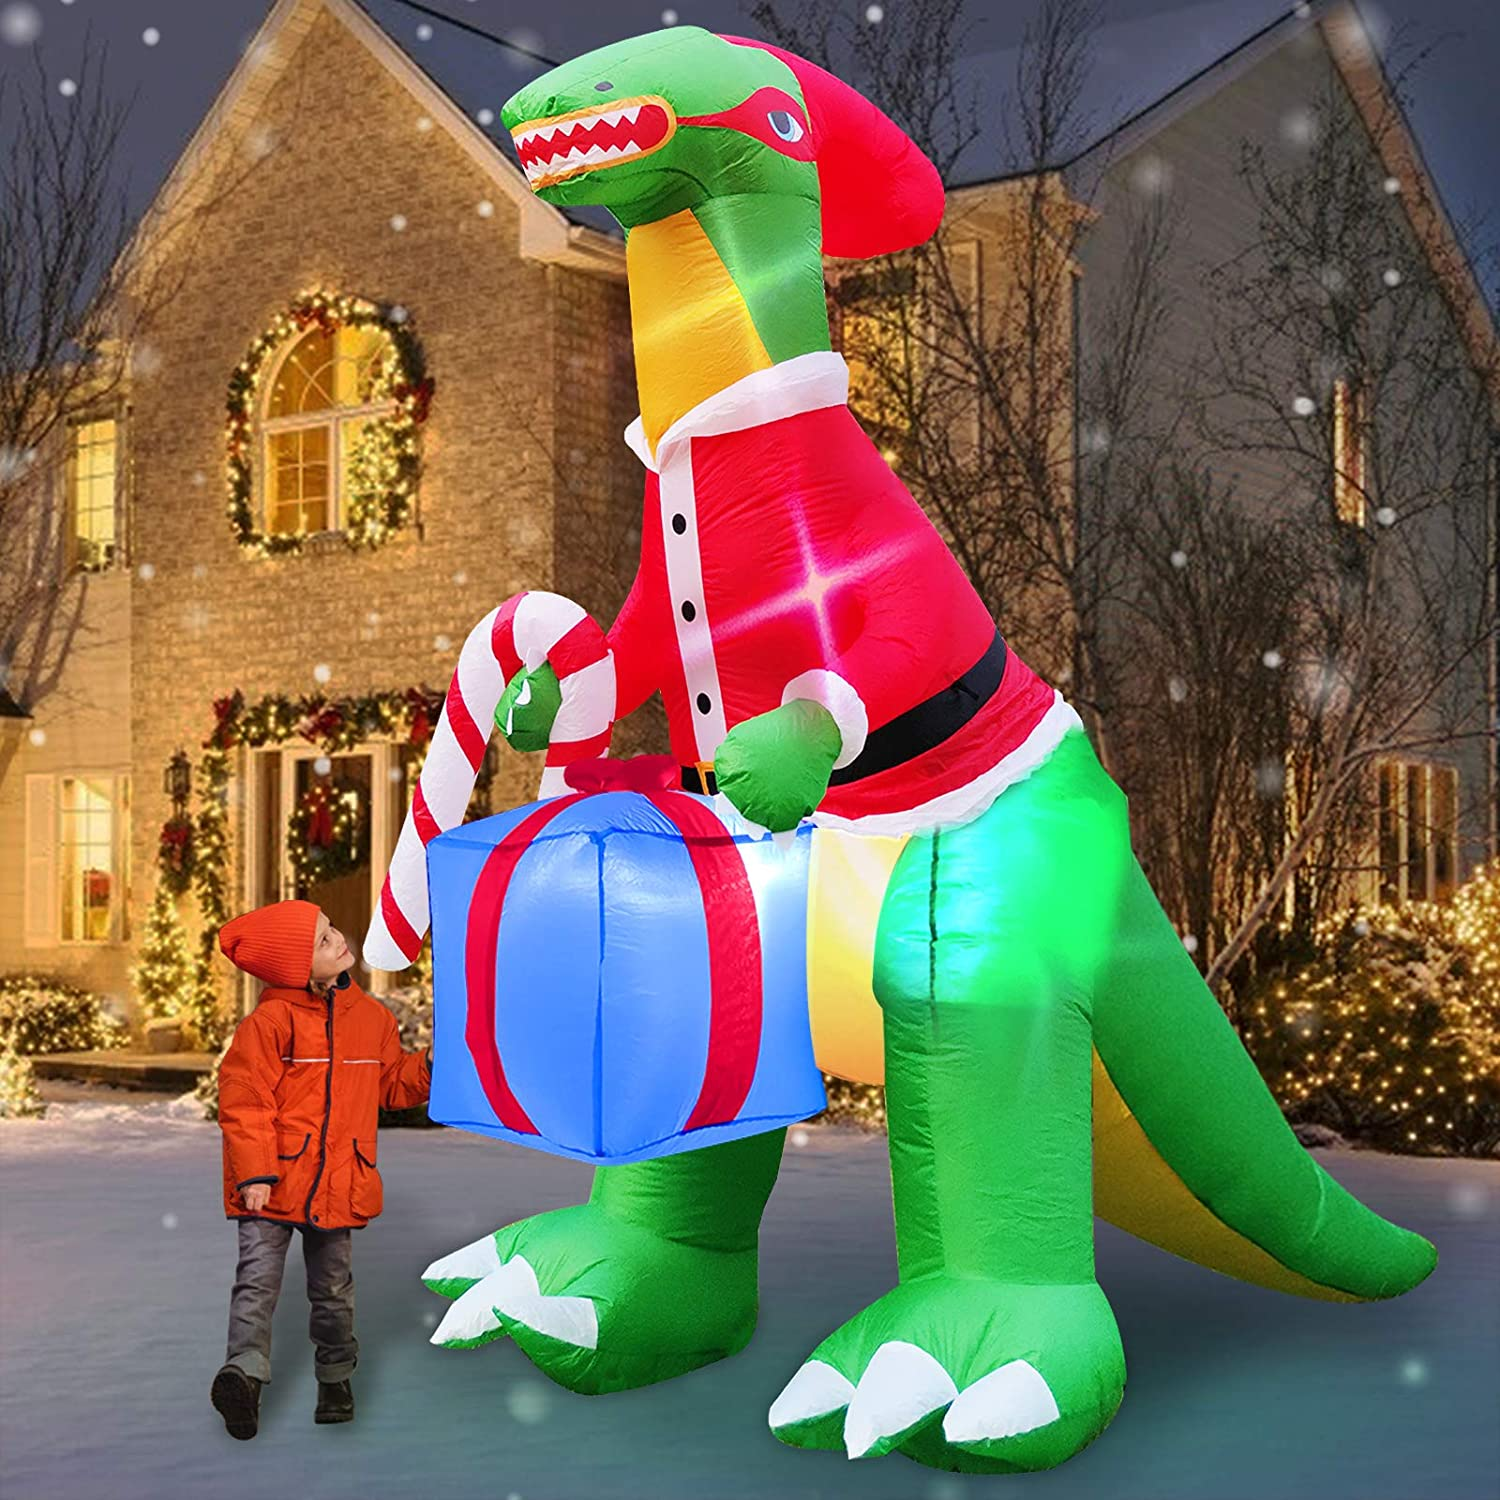 TURNMEON 8 Feet Dinosaur Christmas Inflatables Decor Outdoor Blow up Corythosaurus Holds Candy Cane with Tether Stakes LED Lighted Holiday Christmas Decoration Yard Garden Home Party Decor